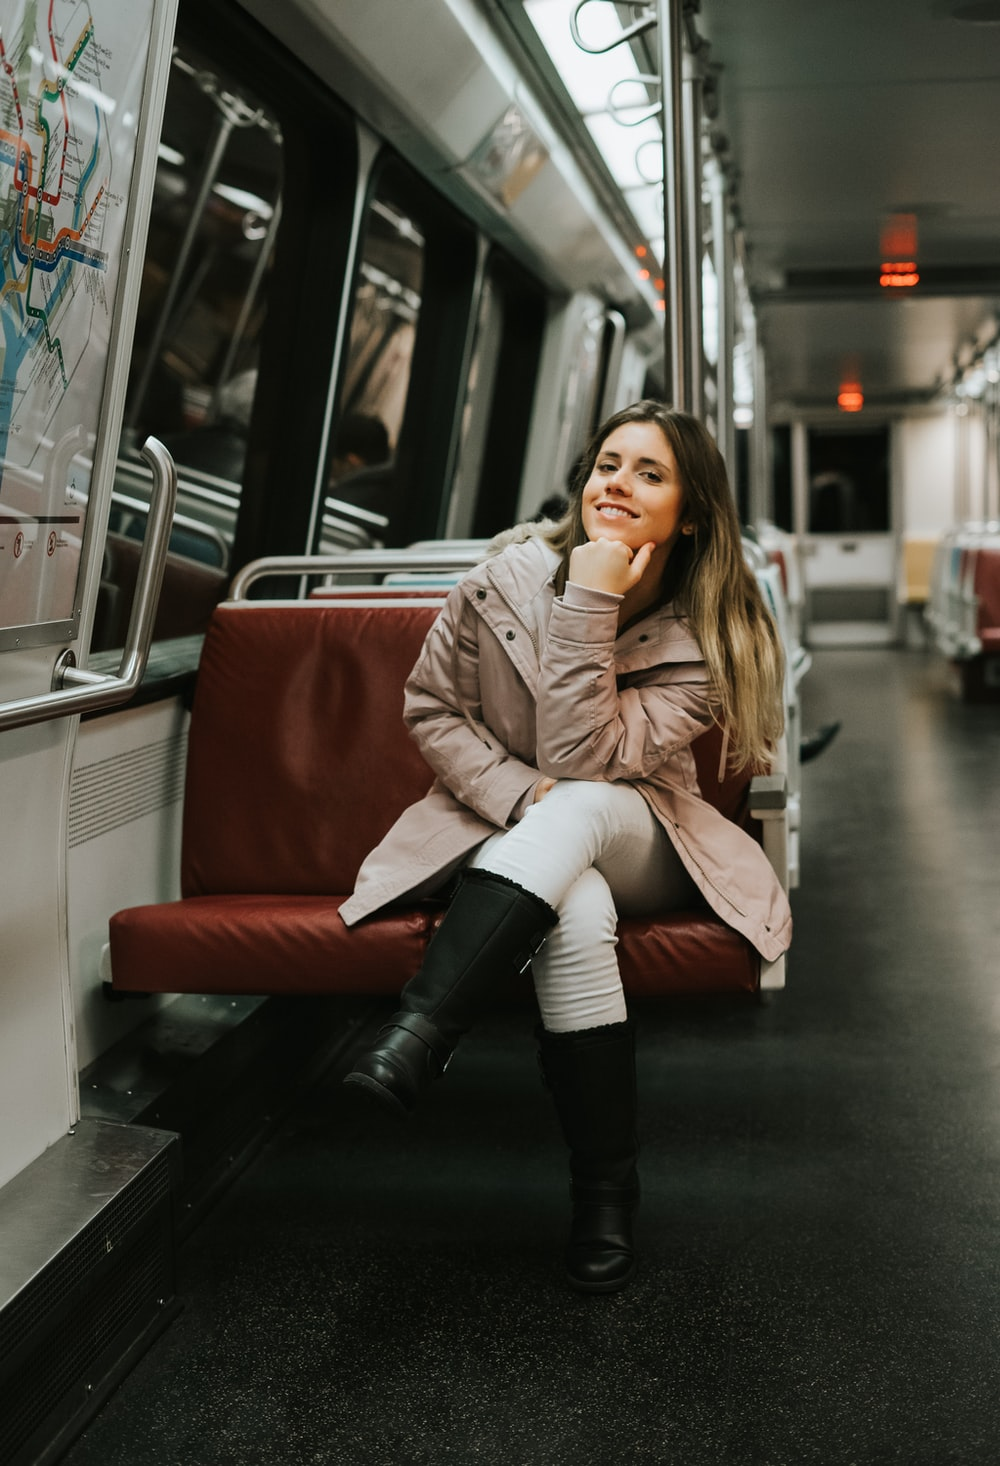 woman in coat sitting on train bench